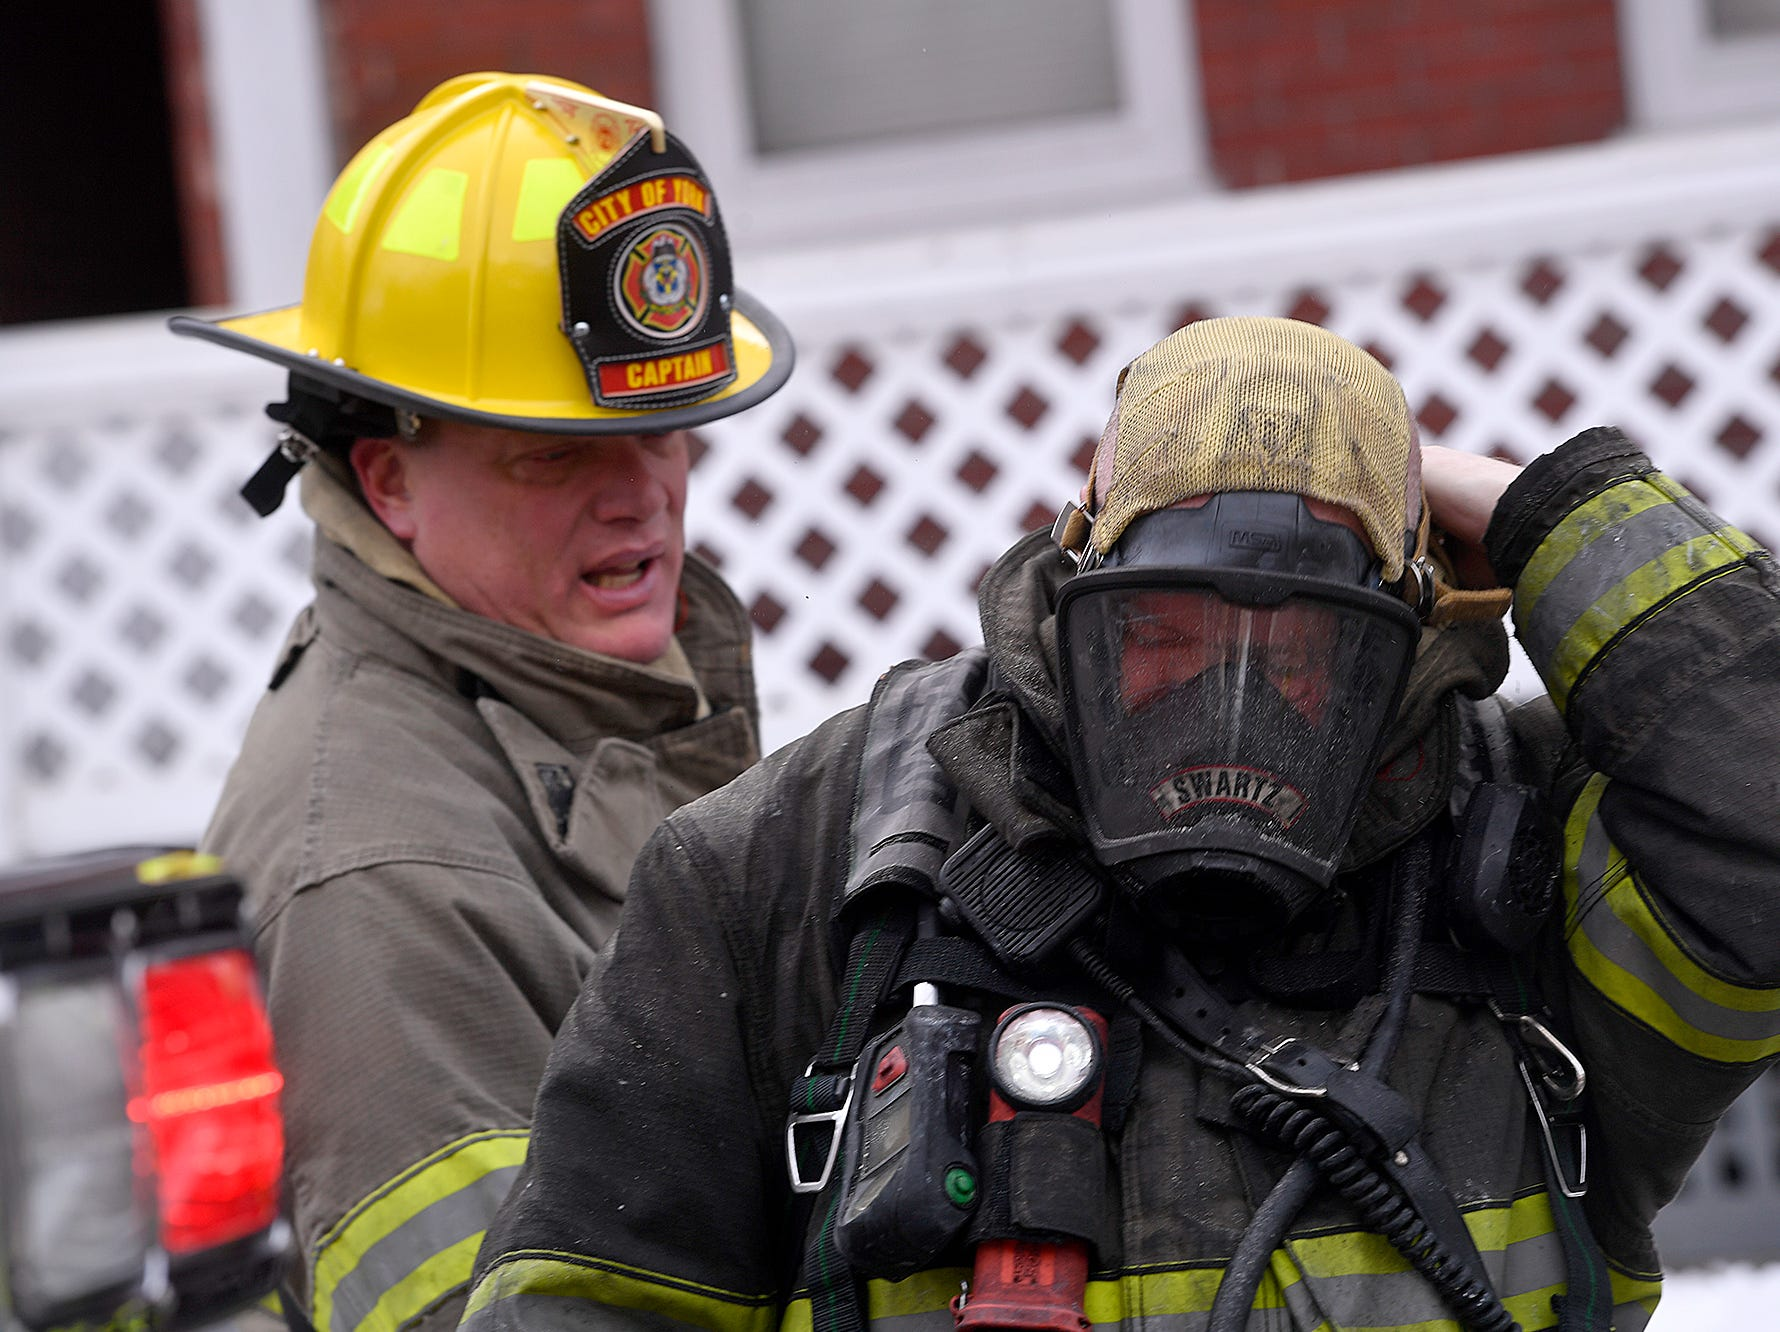 York City Fire Captain Kevin Hotzapple helps firefighter Ken Swartz with his air pack after firefighters knocked a blaze in the 200 block of Kurtz Ave., Wednesday, March 6, 2019. One adult and two children were displaced by the blaze.